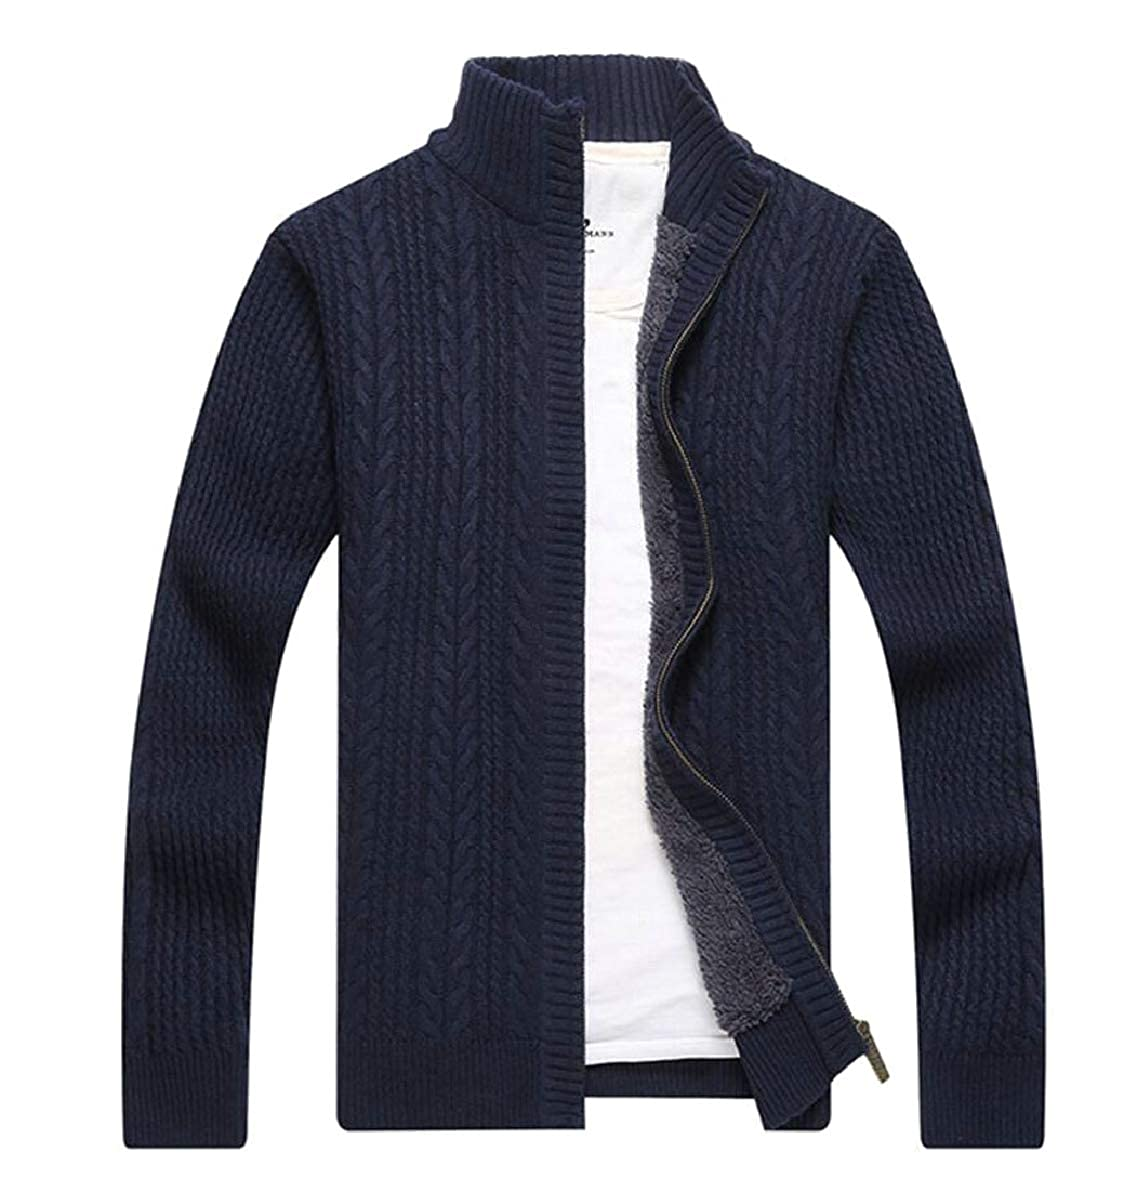 ONTBYB Mens Winter Thicken Stand Collar Full Zip Knit Cardigan Sweater Outwear